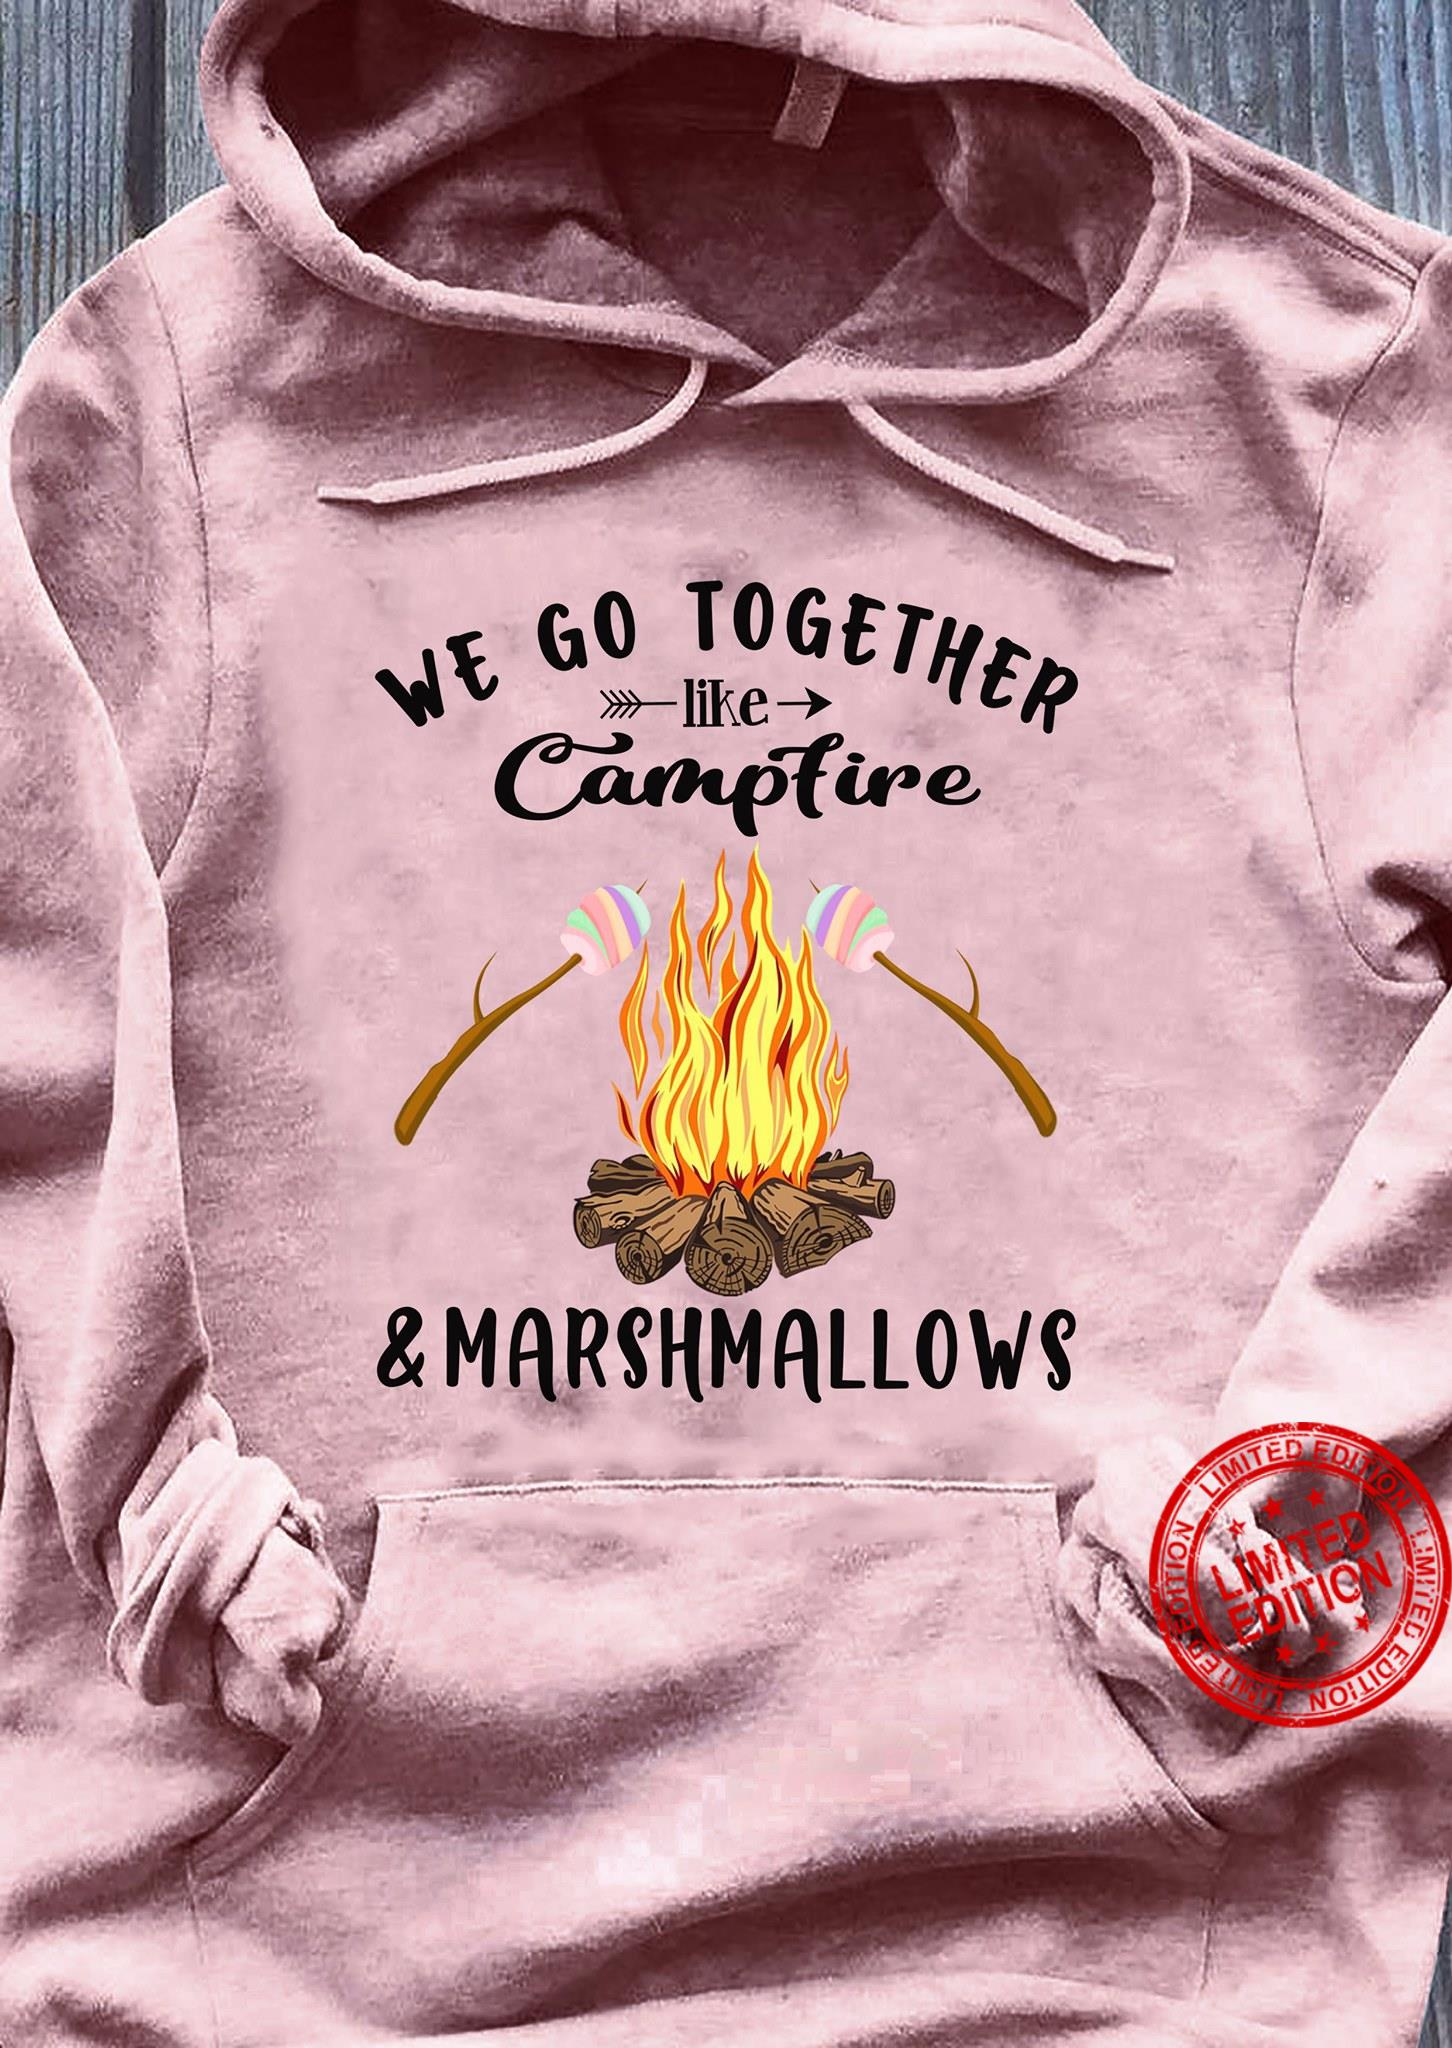 We Go Together Like Campfire & Marshmallows Shirt